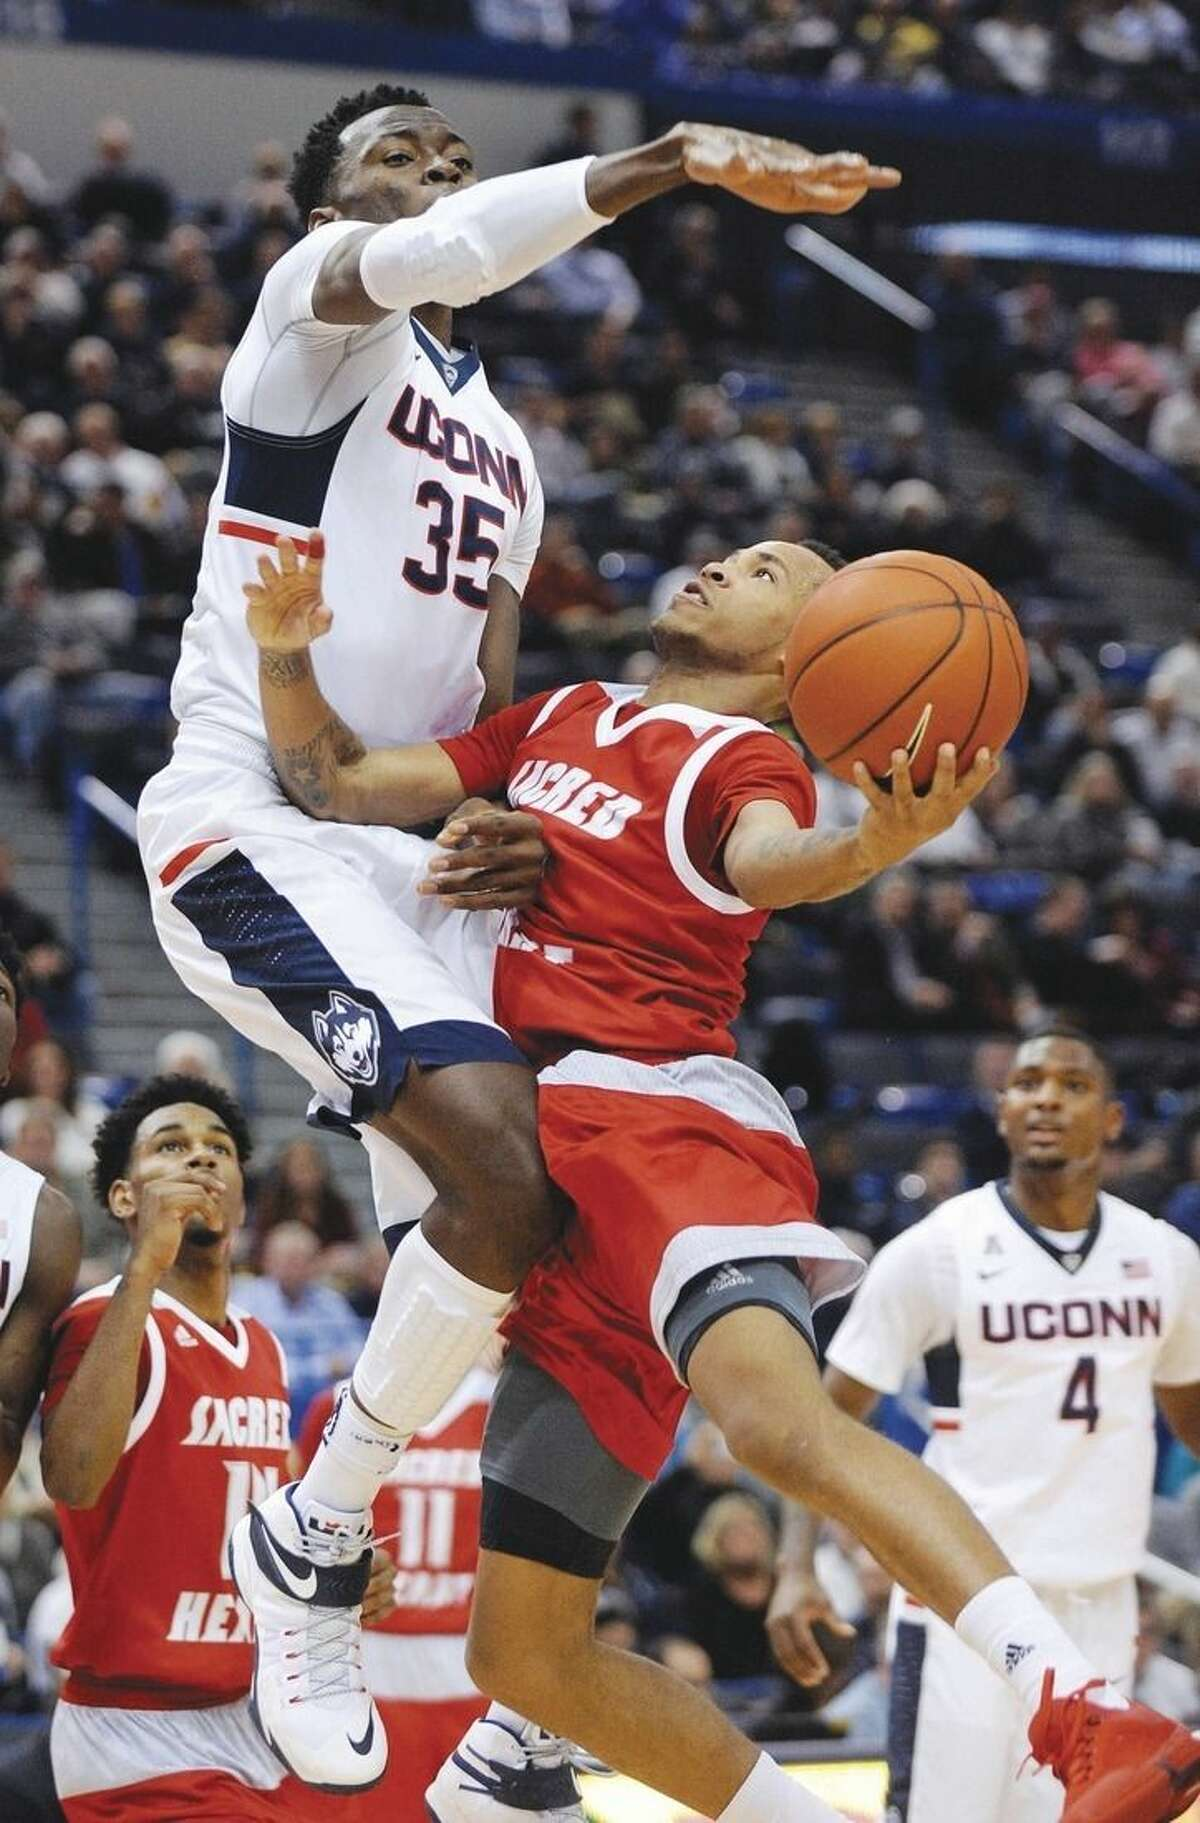 Connecticut's Amida Brimah (35) guards Sacred Heart's Cane Broome during the first half of an NCAA college basketball game in Hartford, Conn., Wednesday, Dec. 2, 2015. (AP Photo/Fred Beckham)